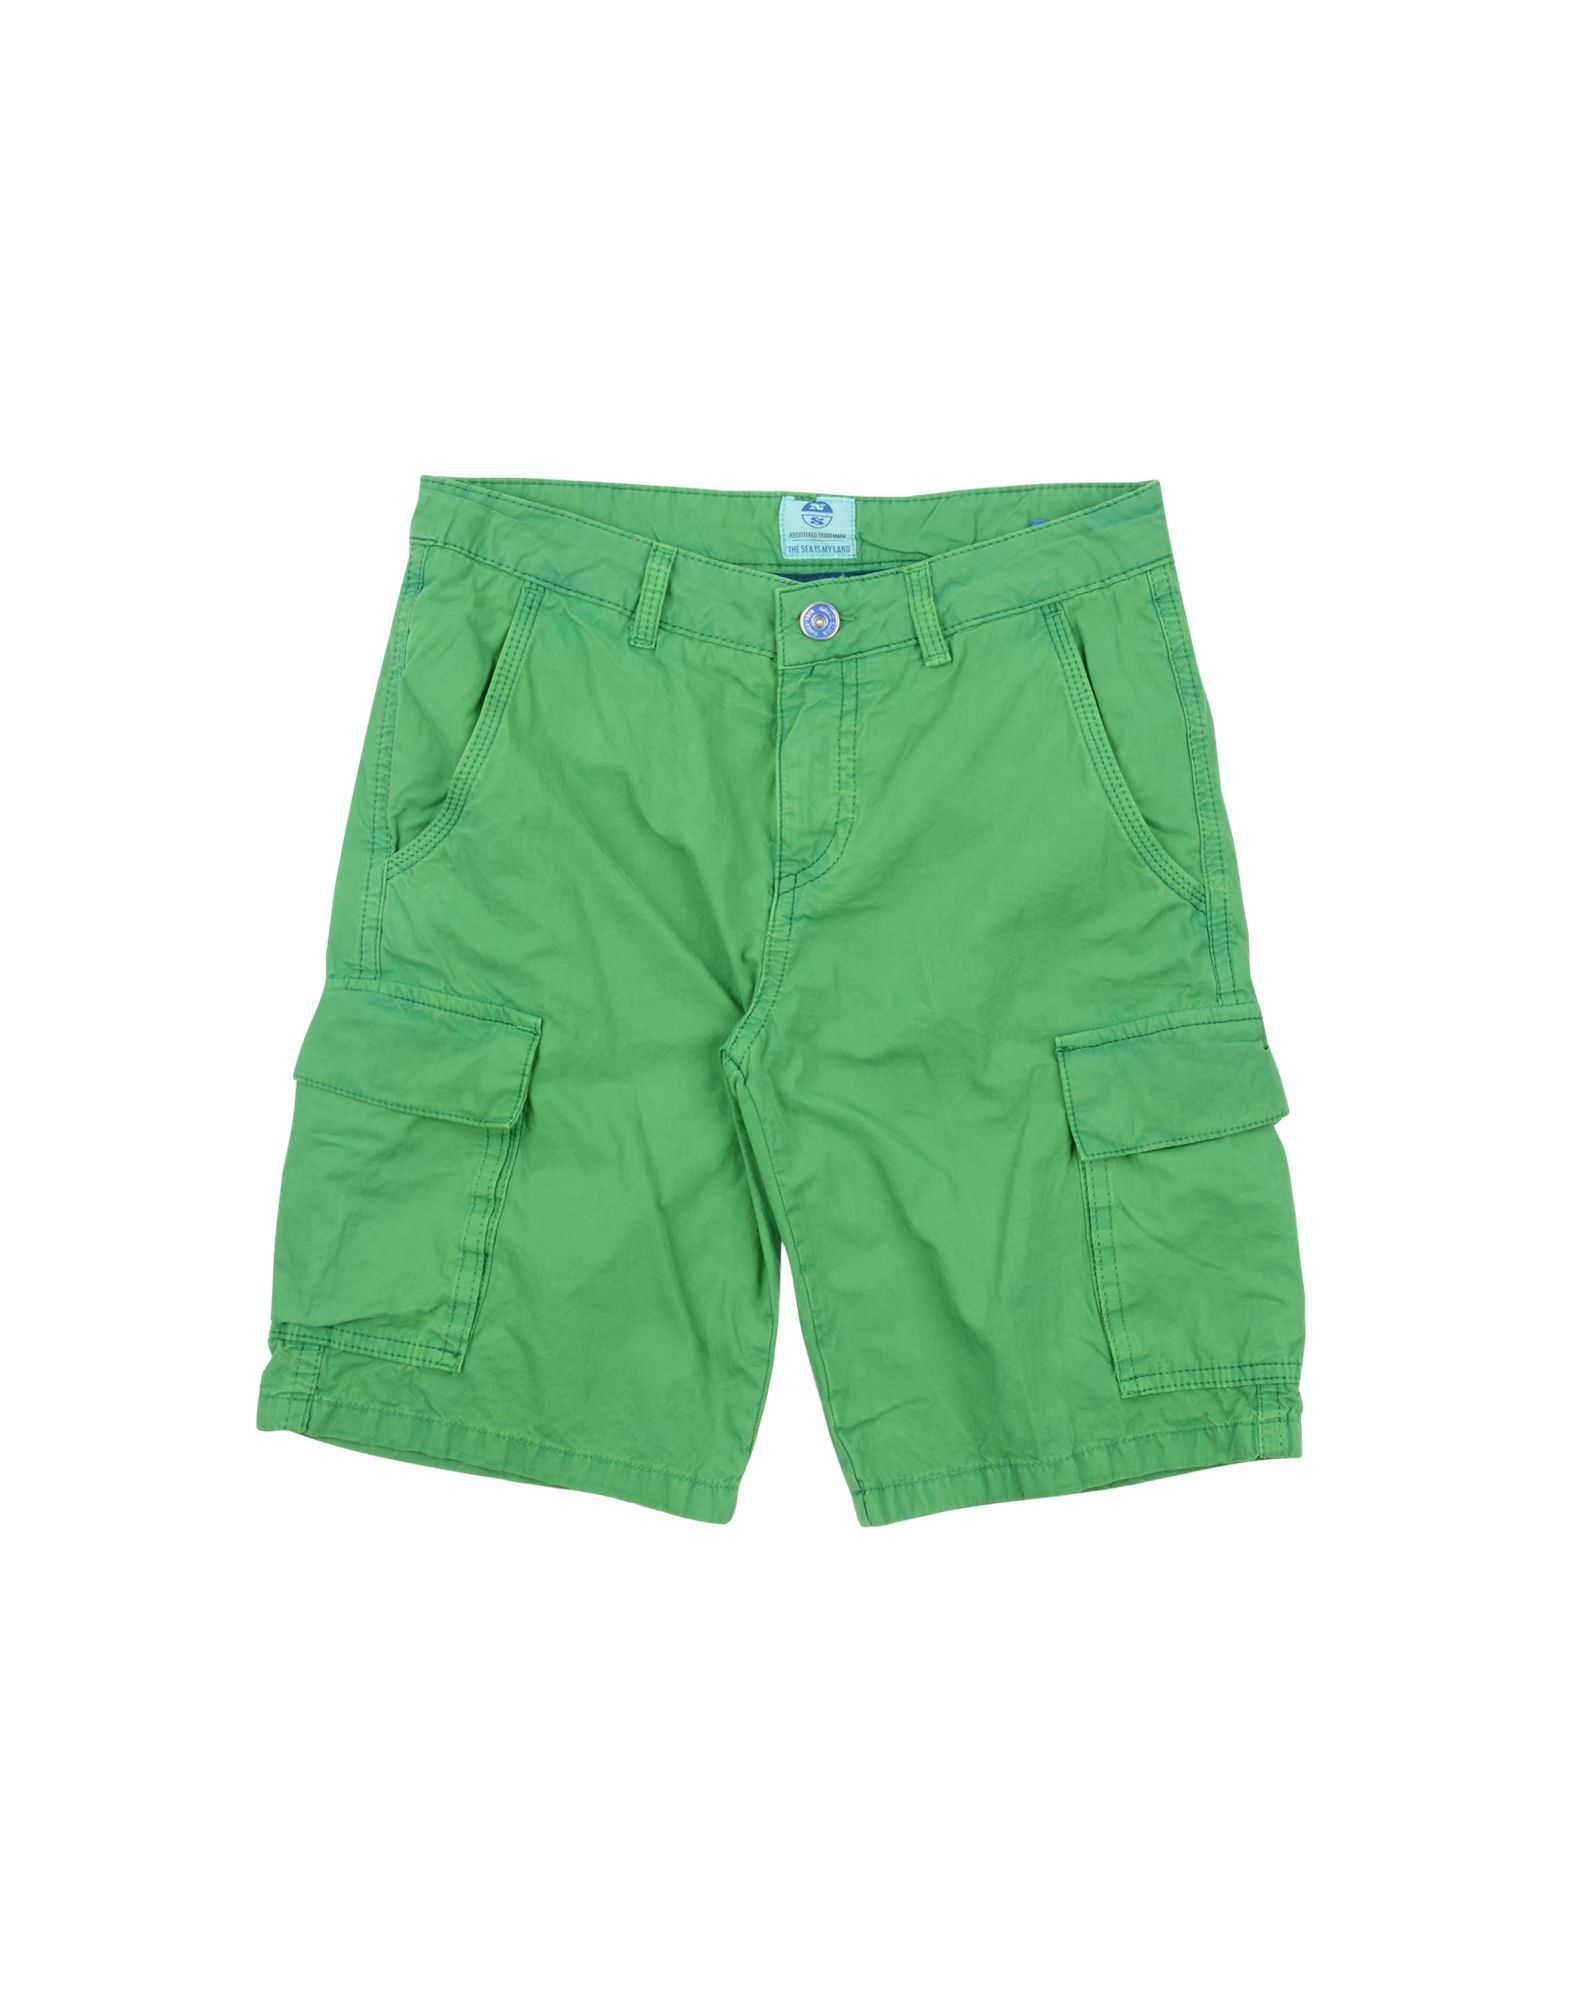 TROUSERS Boy North Sails Green Cotton